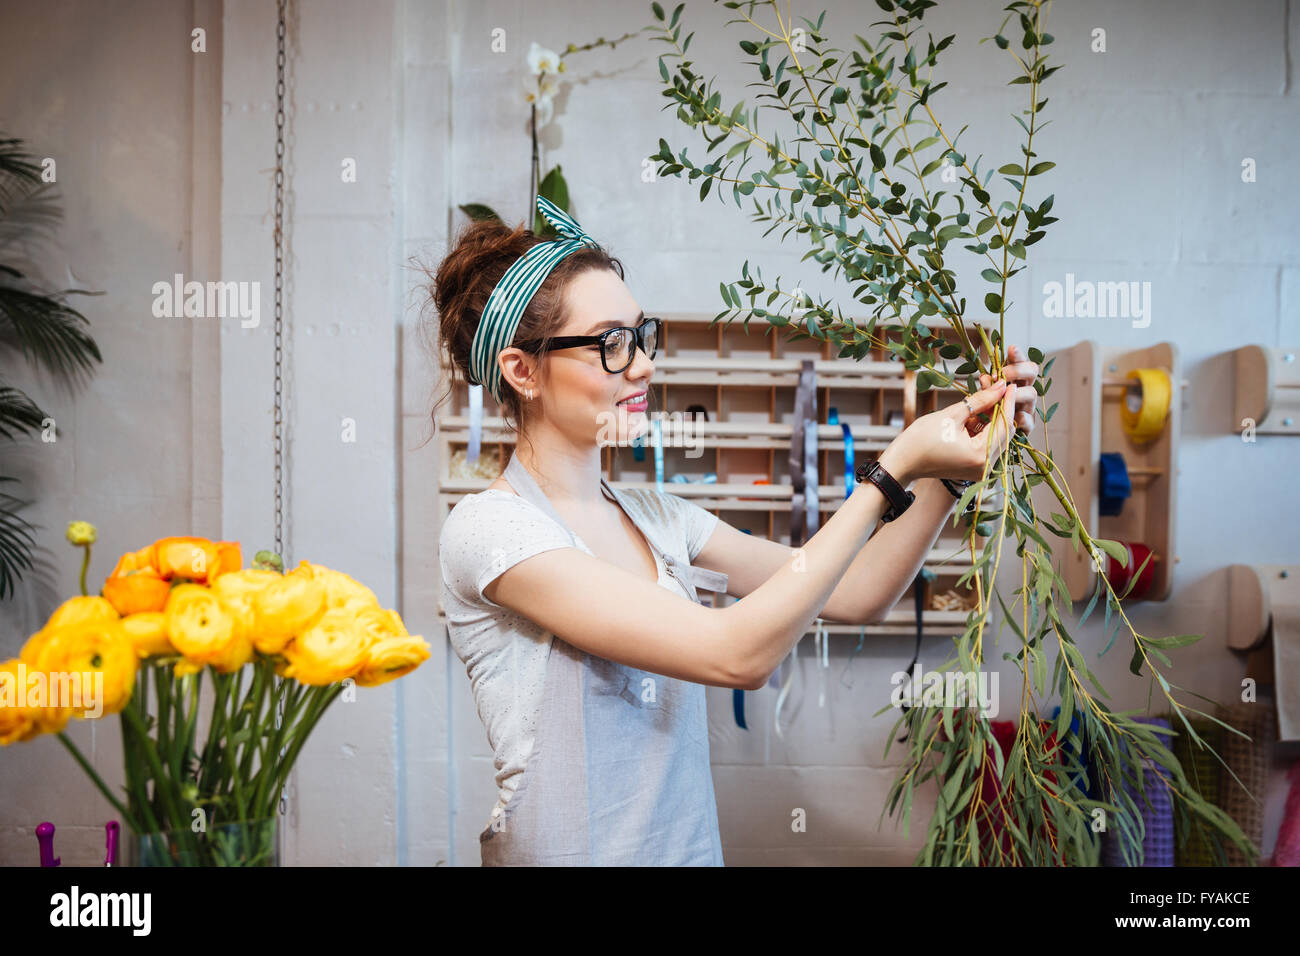 Smiling lovely young woman florist arranging plants in flower shop - Stock Image